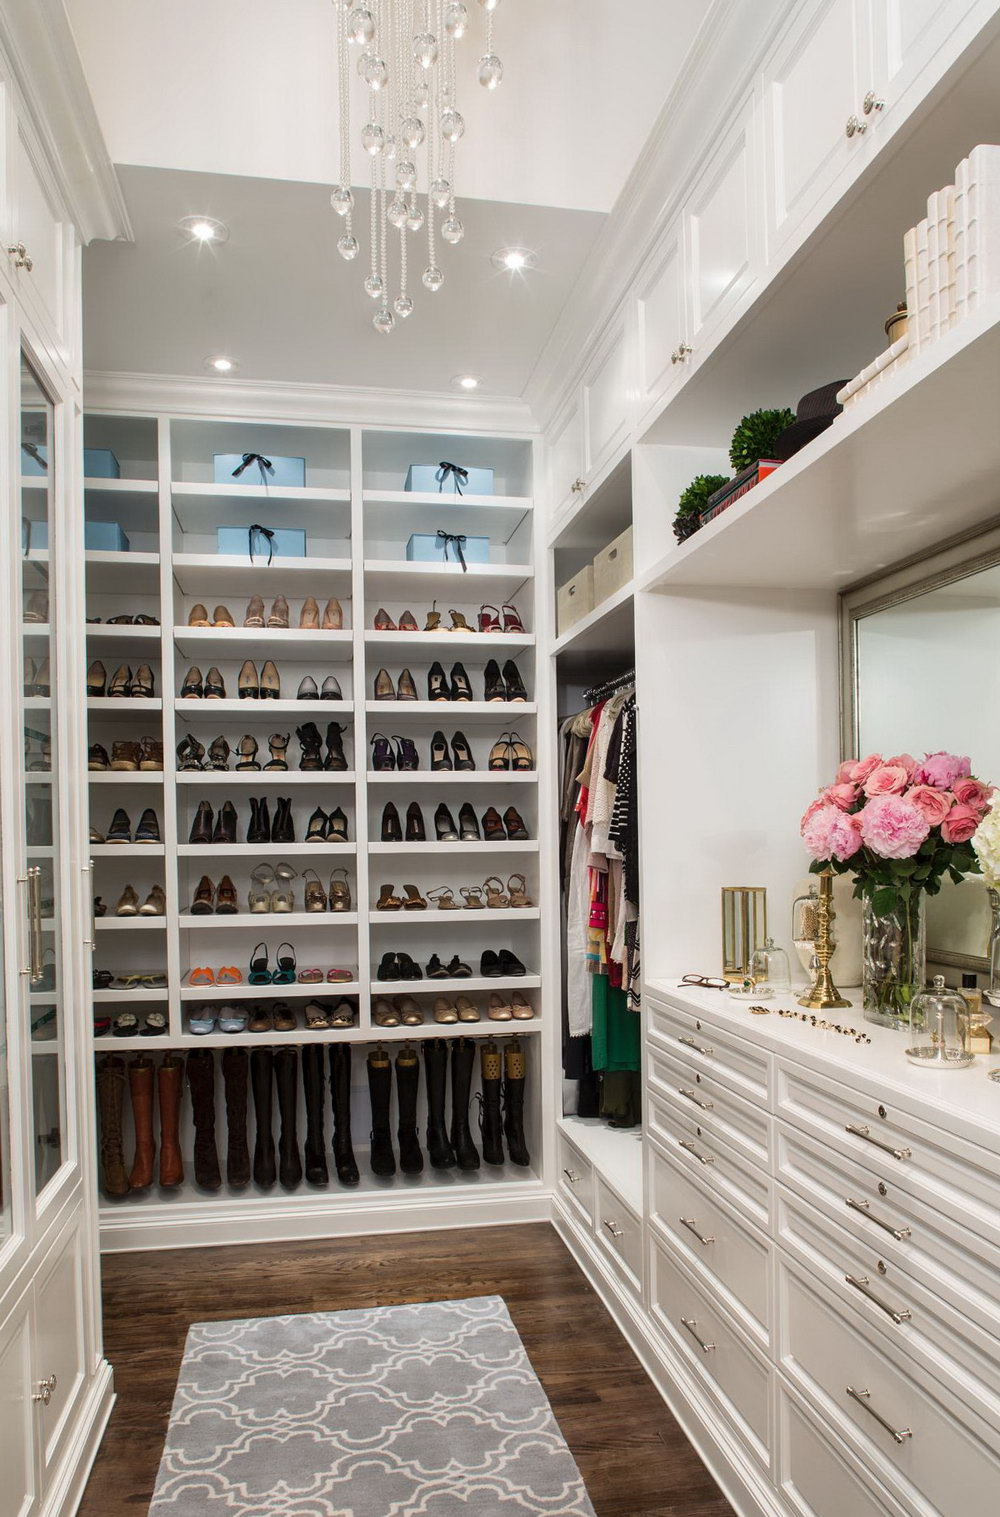 Closet Design Ideas Imagescloset Design Ideas Imagescloset Design Ideas Images